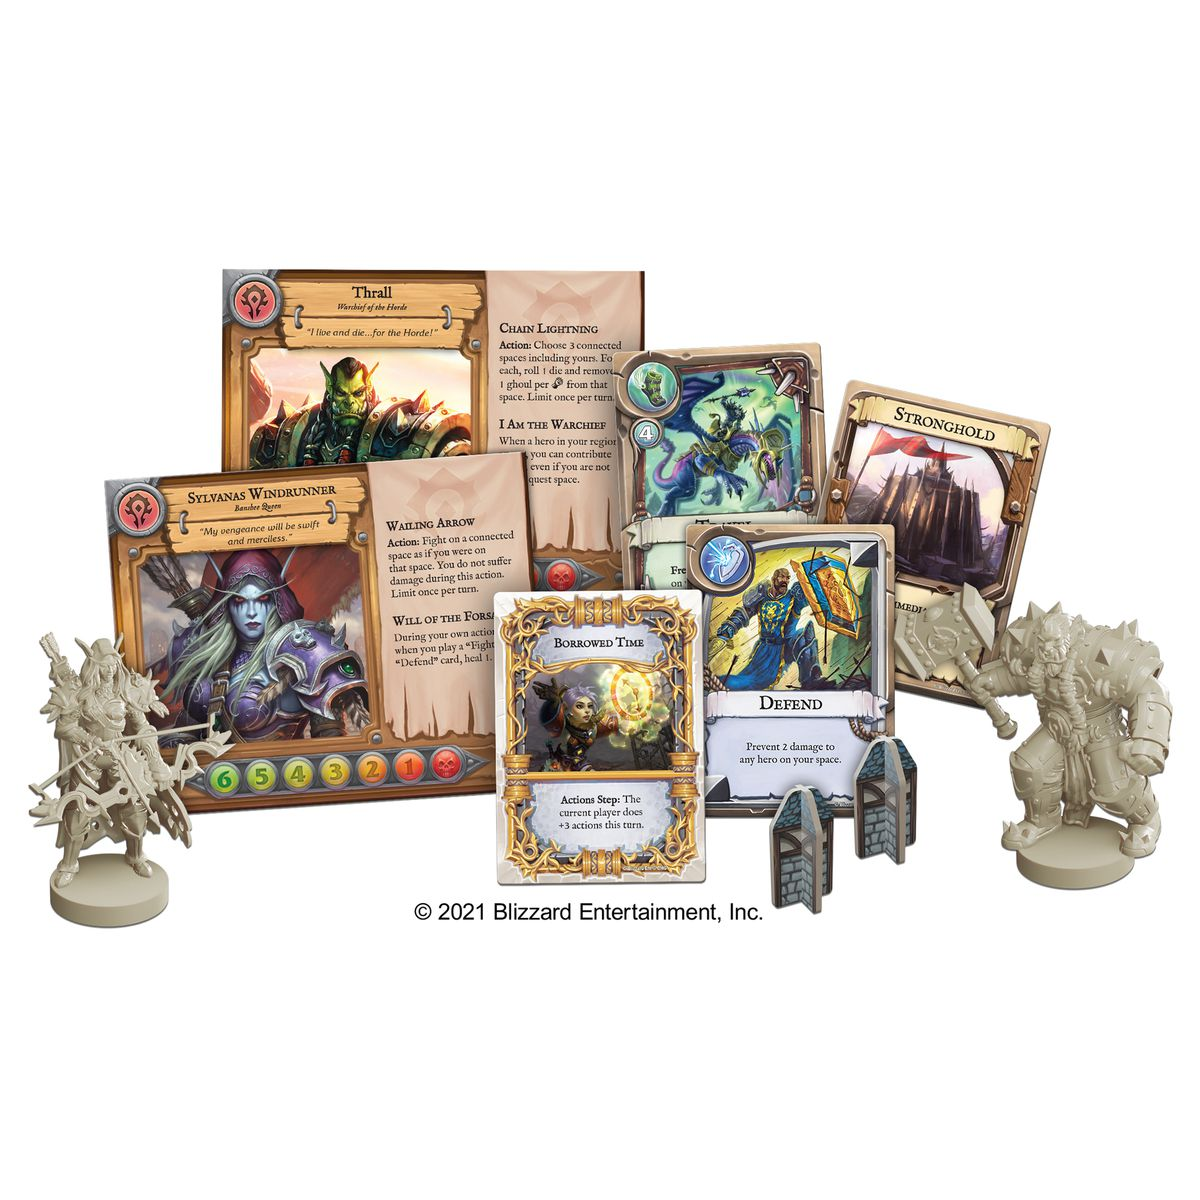 Hero character pieces, including two sideboard cards with special powers for Sylvanas and Thrall.